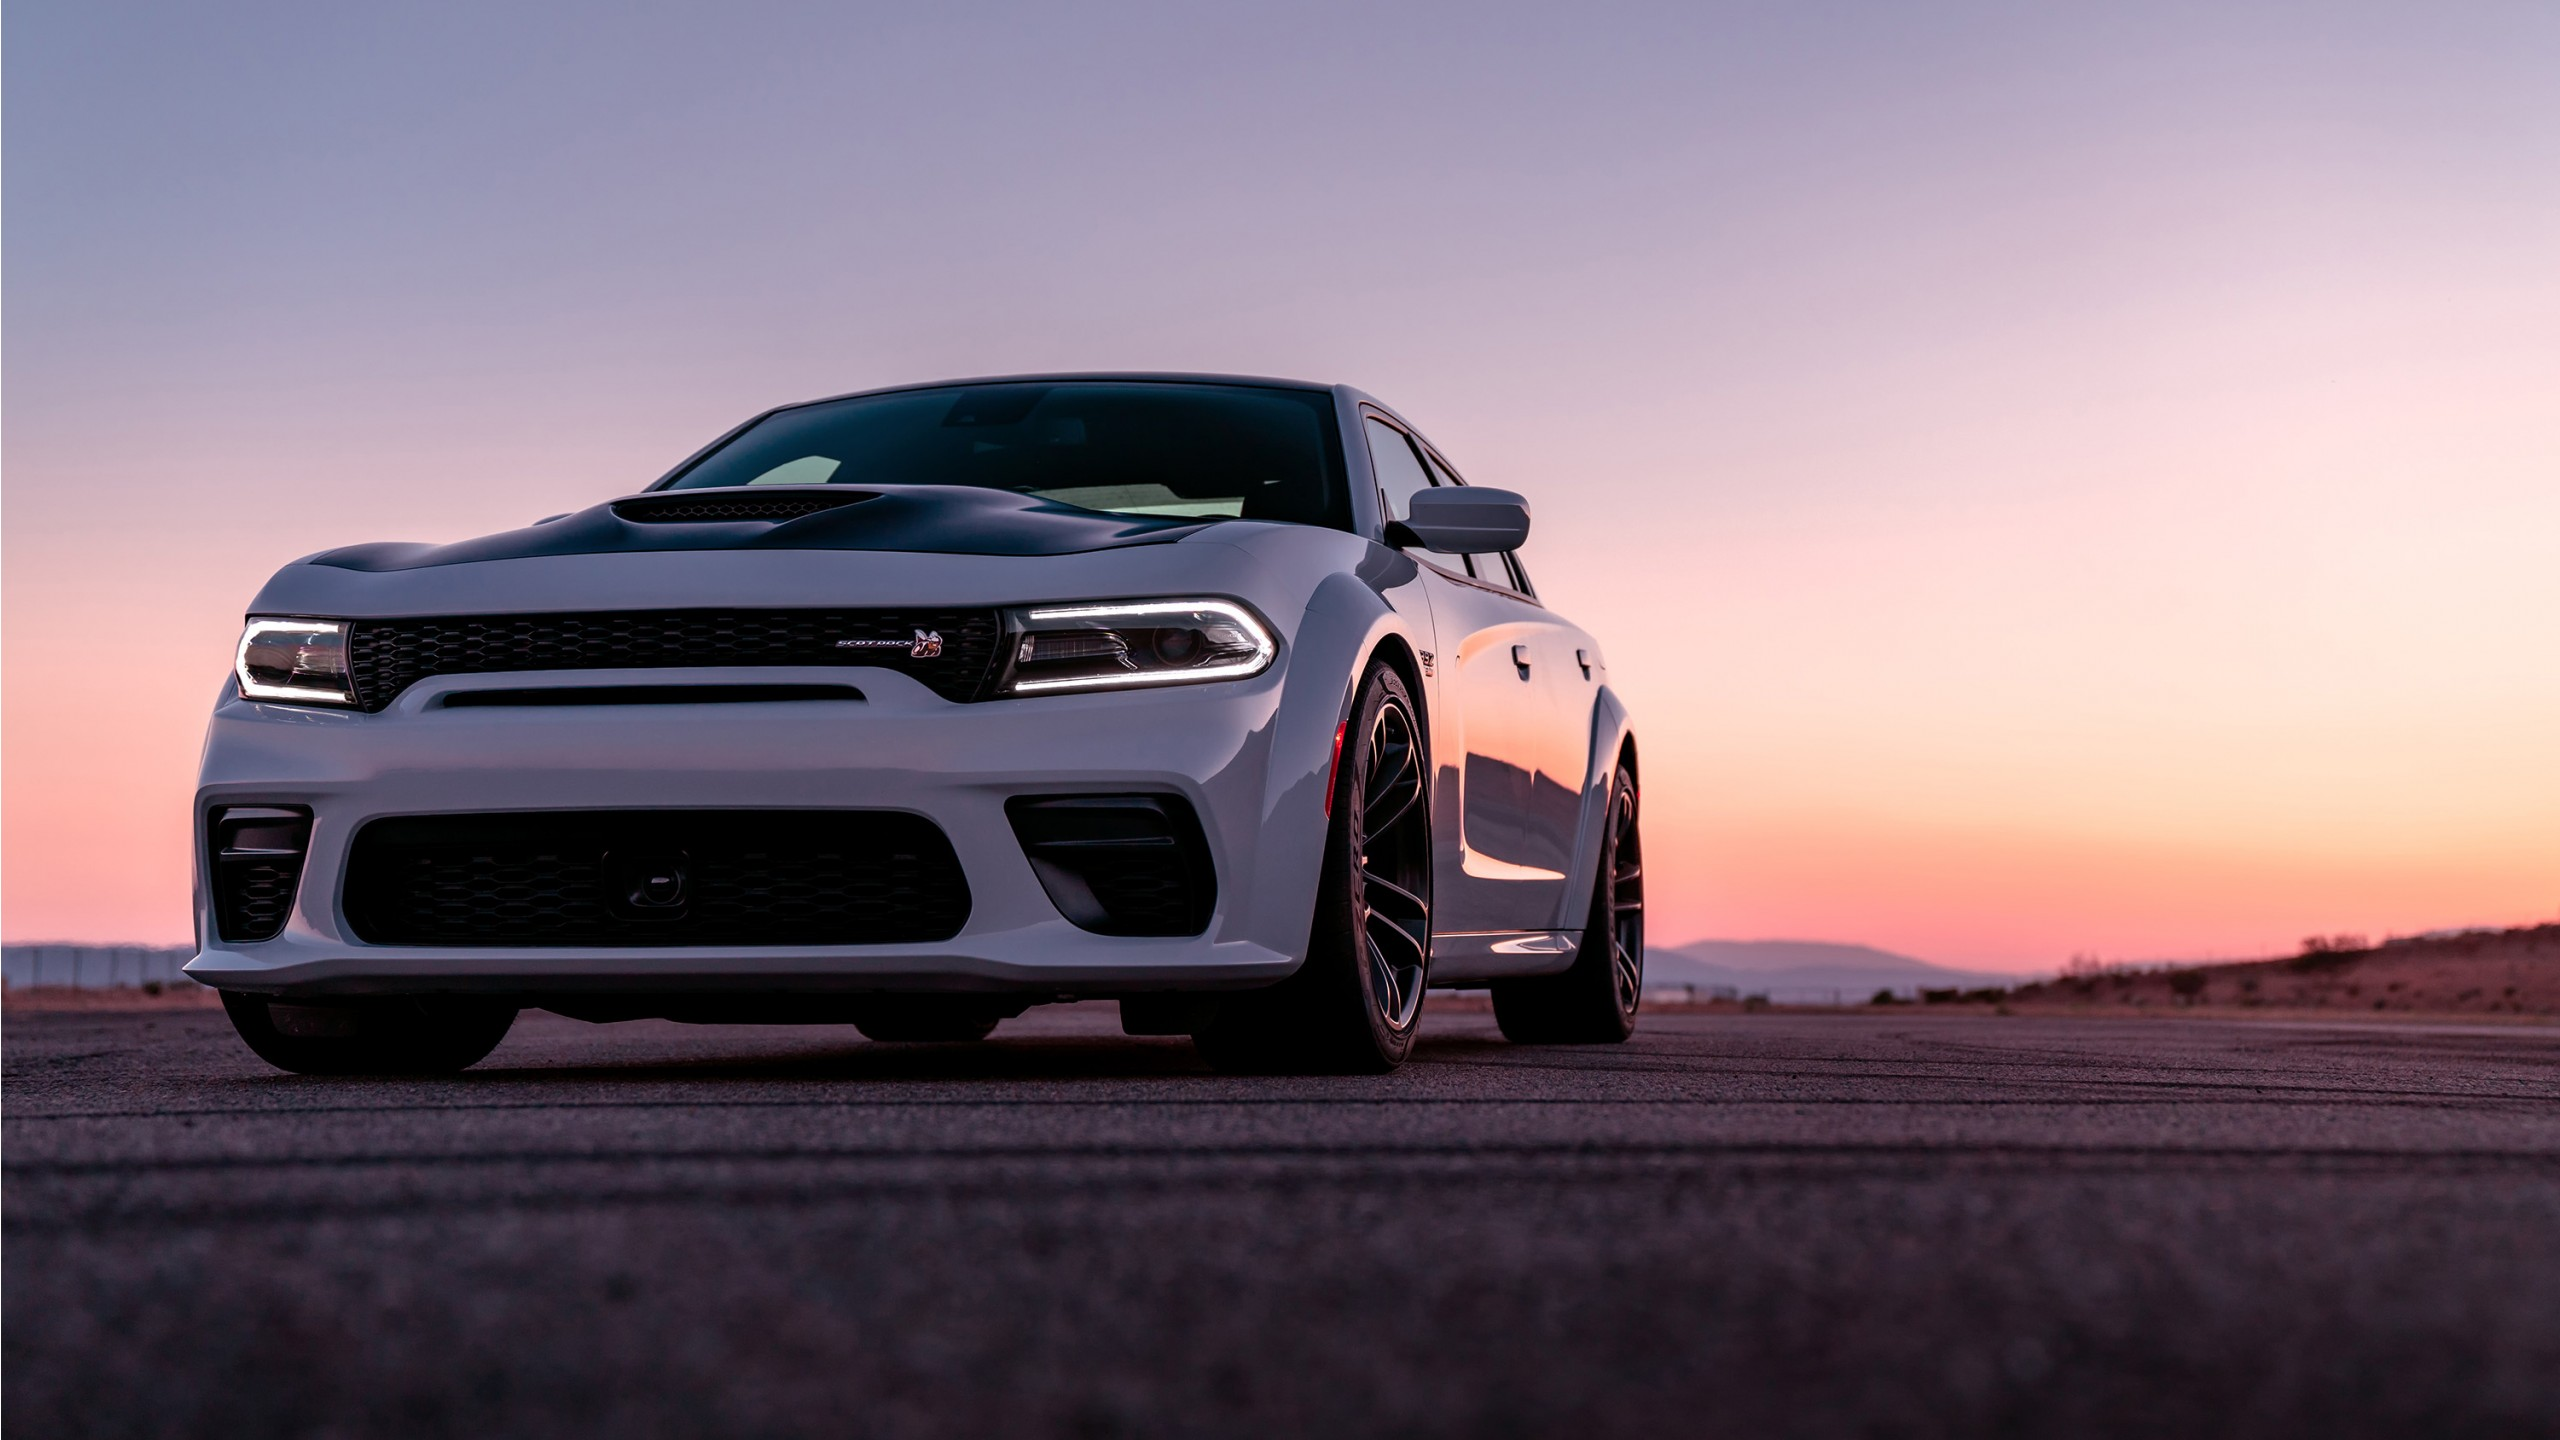 Dodge Charger Pursuit >> 2020 Dodge Charger Scat Pack Widebody Wallpaper | HD Car ...